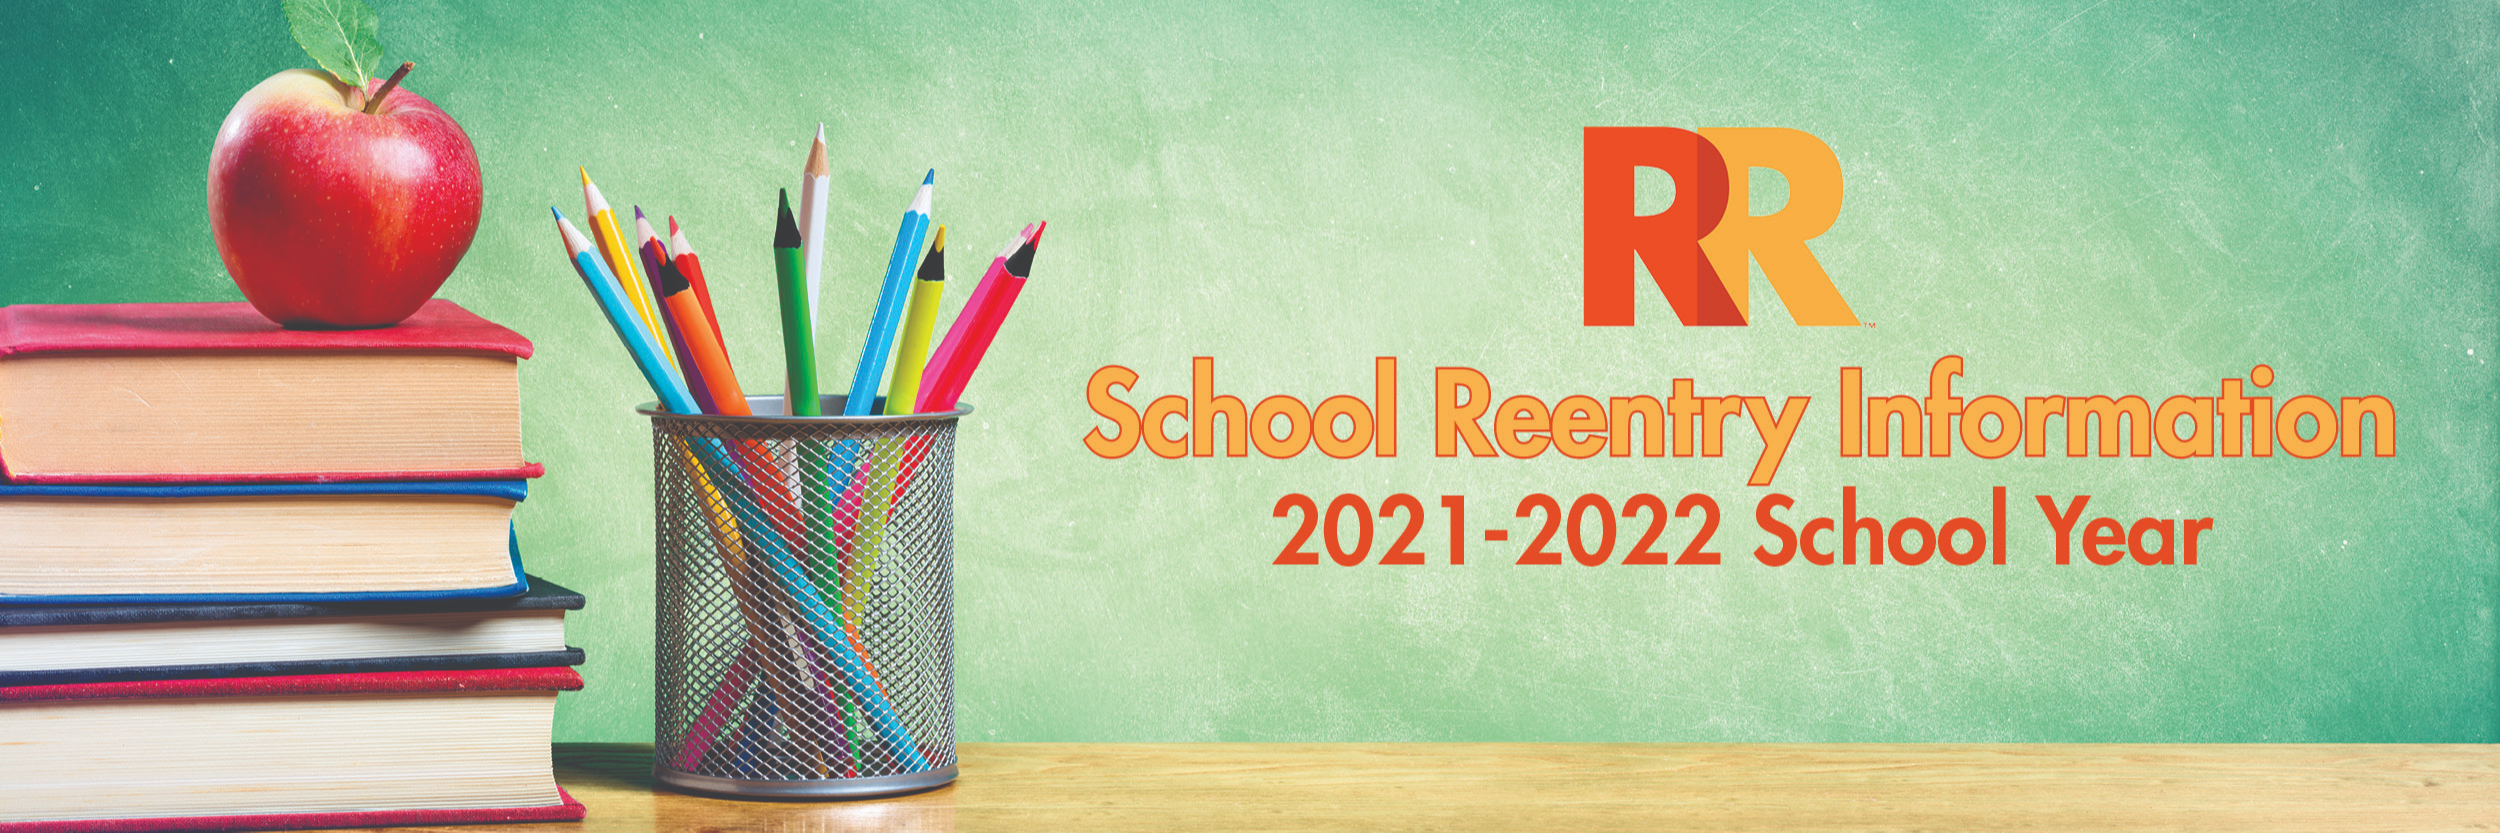 School Reentry Information for the 21-22 School Year